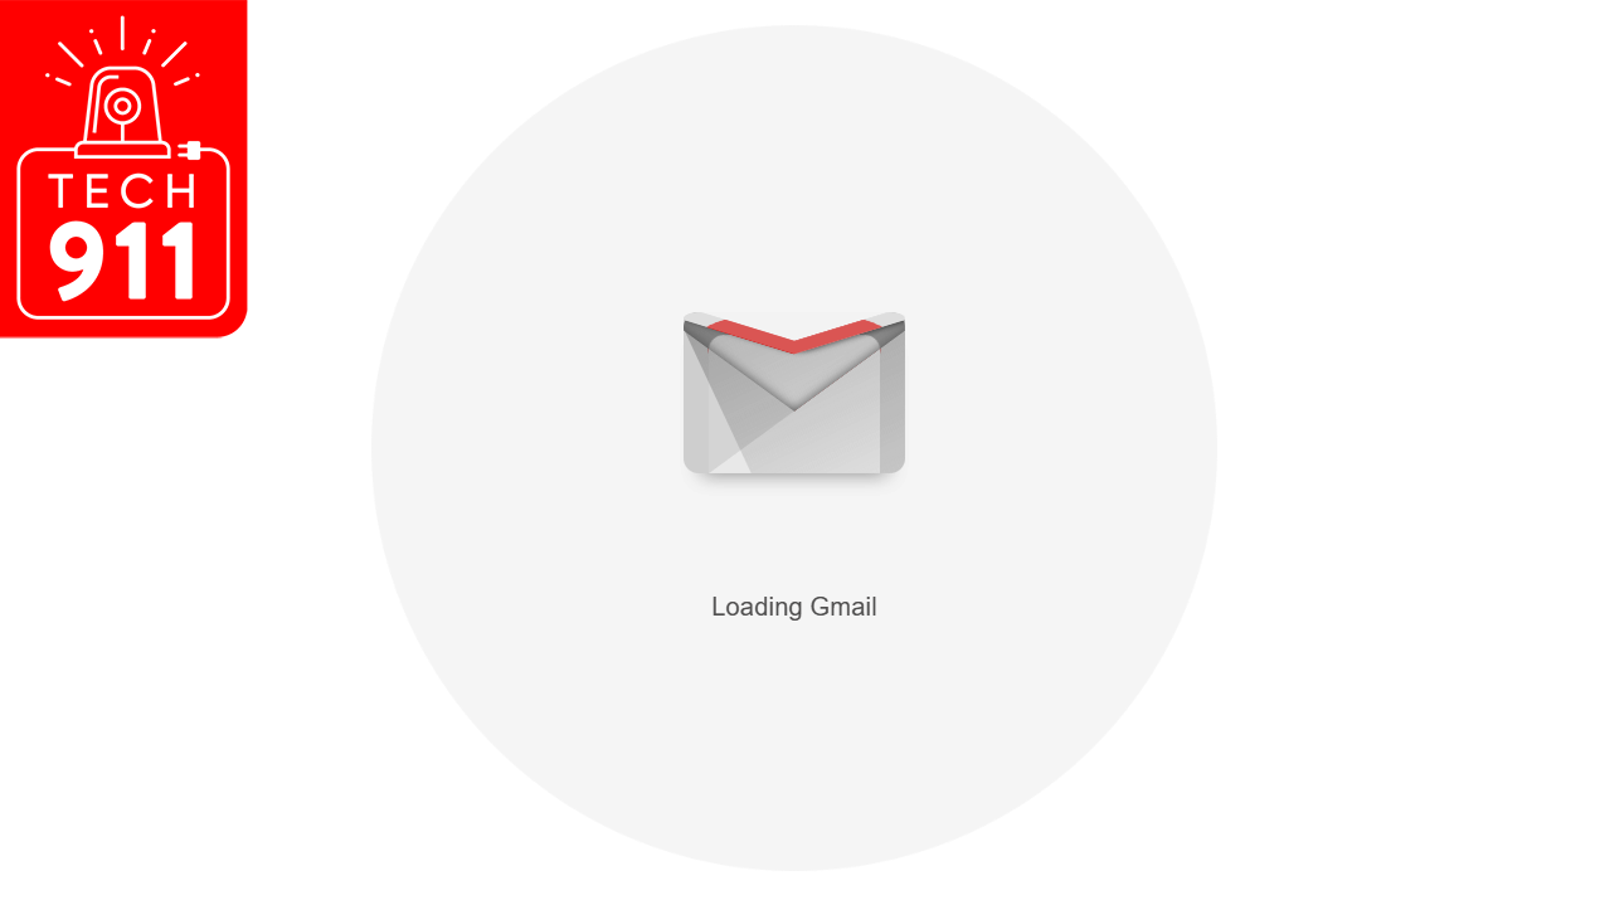 QnA VBage I Can't Get Gmail to Load and It's Driving Me Crazy